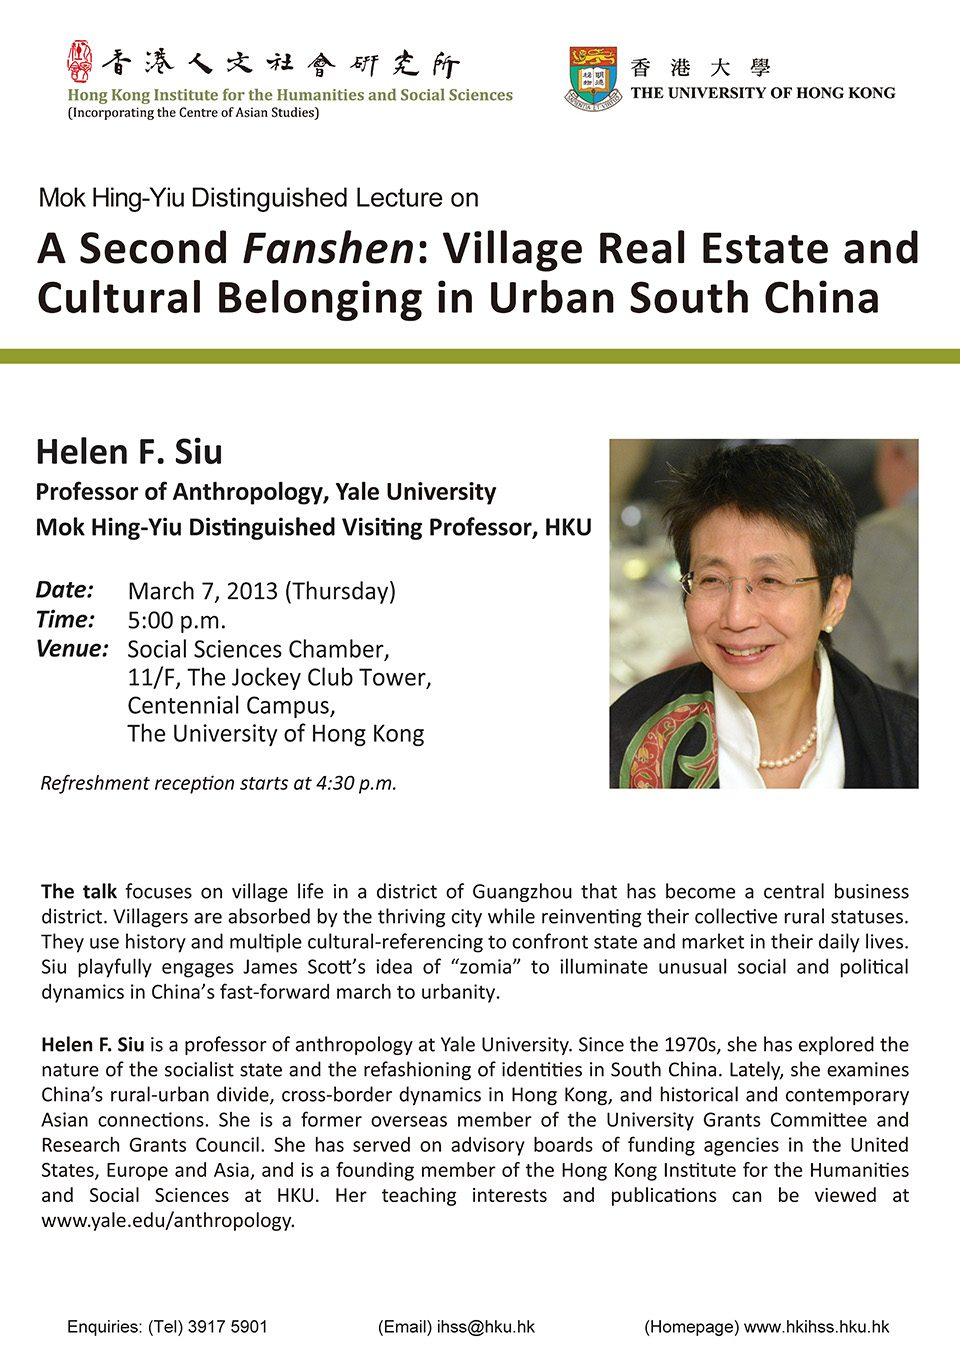 "Mok Hing-Yiu Distinguished Lecture on ""A Second Fanshen: Village Real Estate and Cultural Belonging in Urban South China"" by Professor Helen F. Siu (March 7, 2013)"